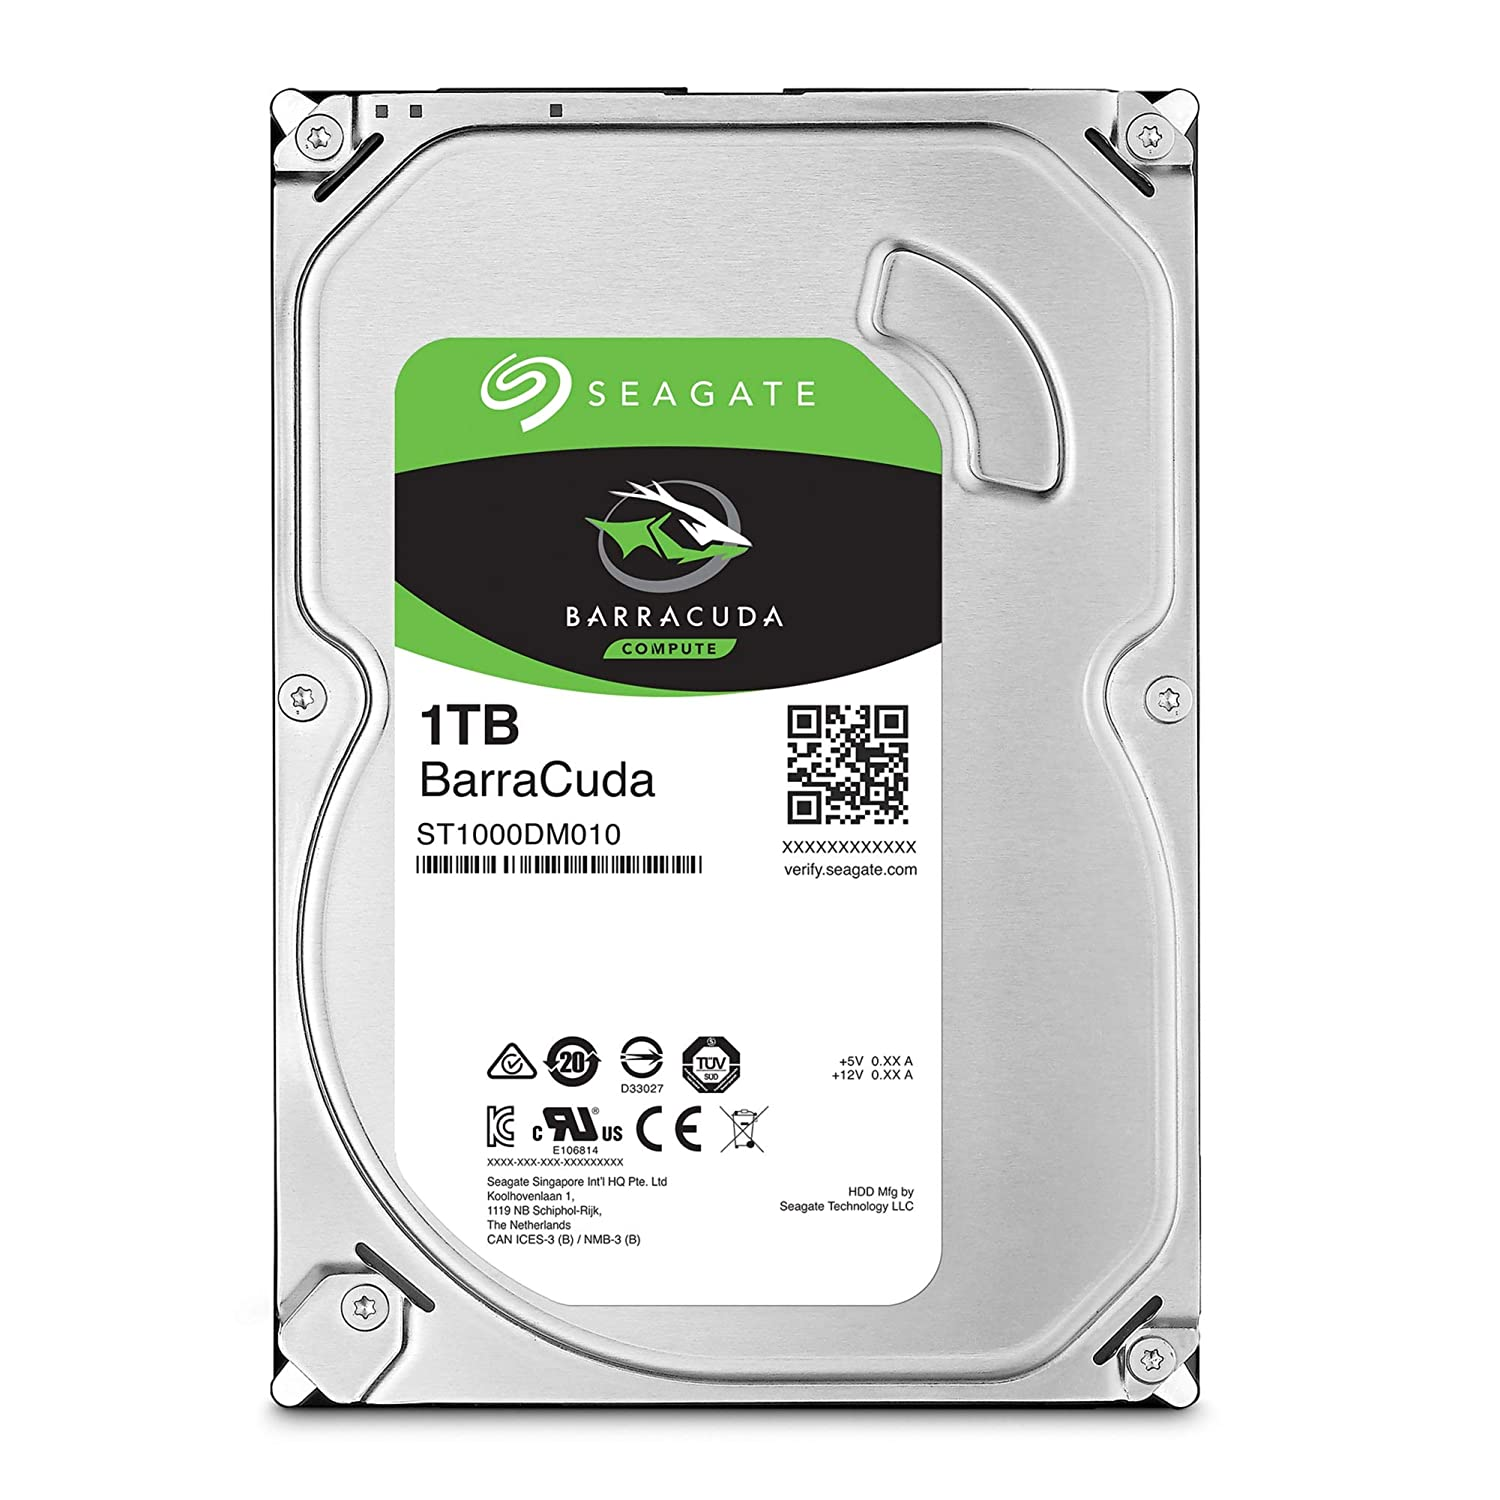 Seagate BarraCuda 1TB Internal Hard Drive HDD – 3.5 Inch SATA 6 Gb/s 7200 RPM 64MB Cache for Computer Desktop PC – Frustration Free Packaging (ST1000DM010)